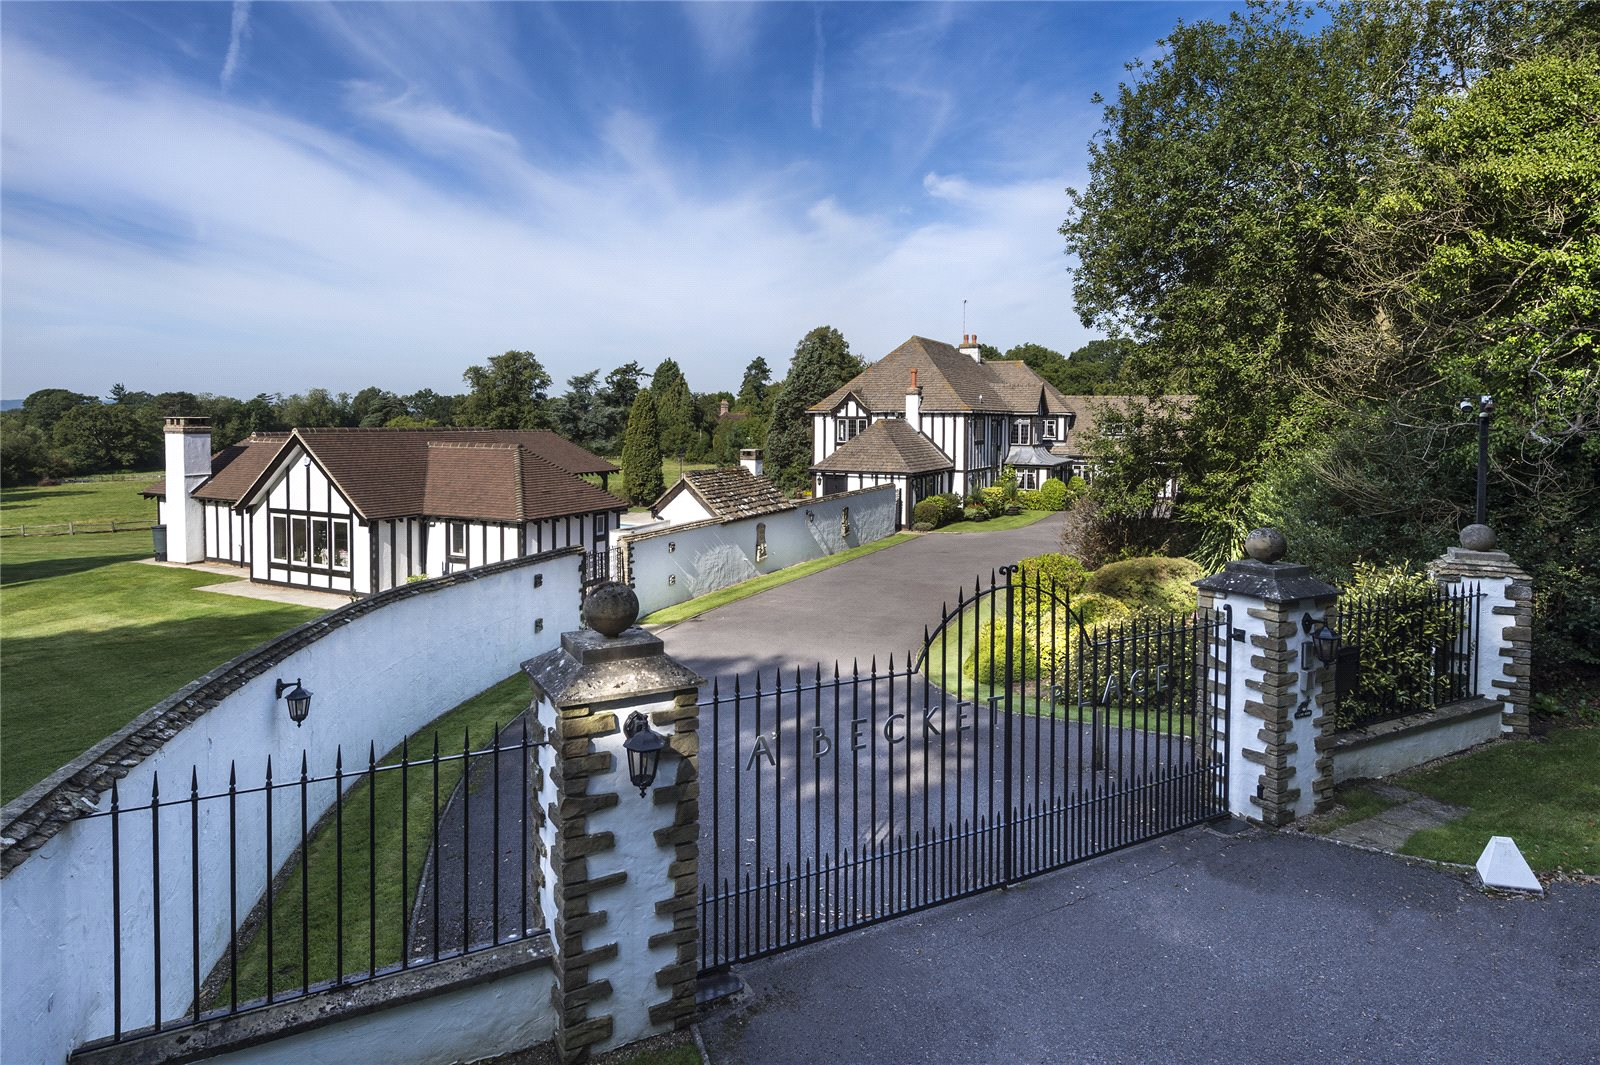 Villa per Vendita alle ore Merrywood Lane, Thakeham, Pulborough, West Sussex, RH20 Pulborough, Inghilterra